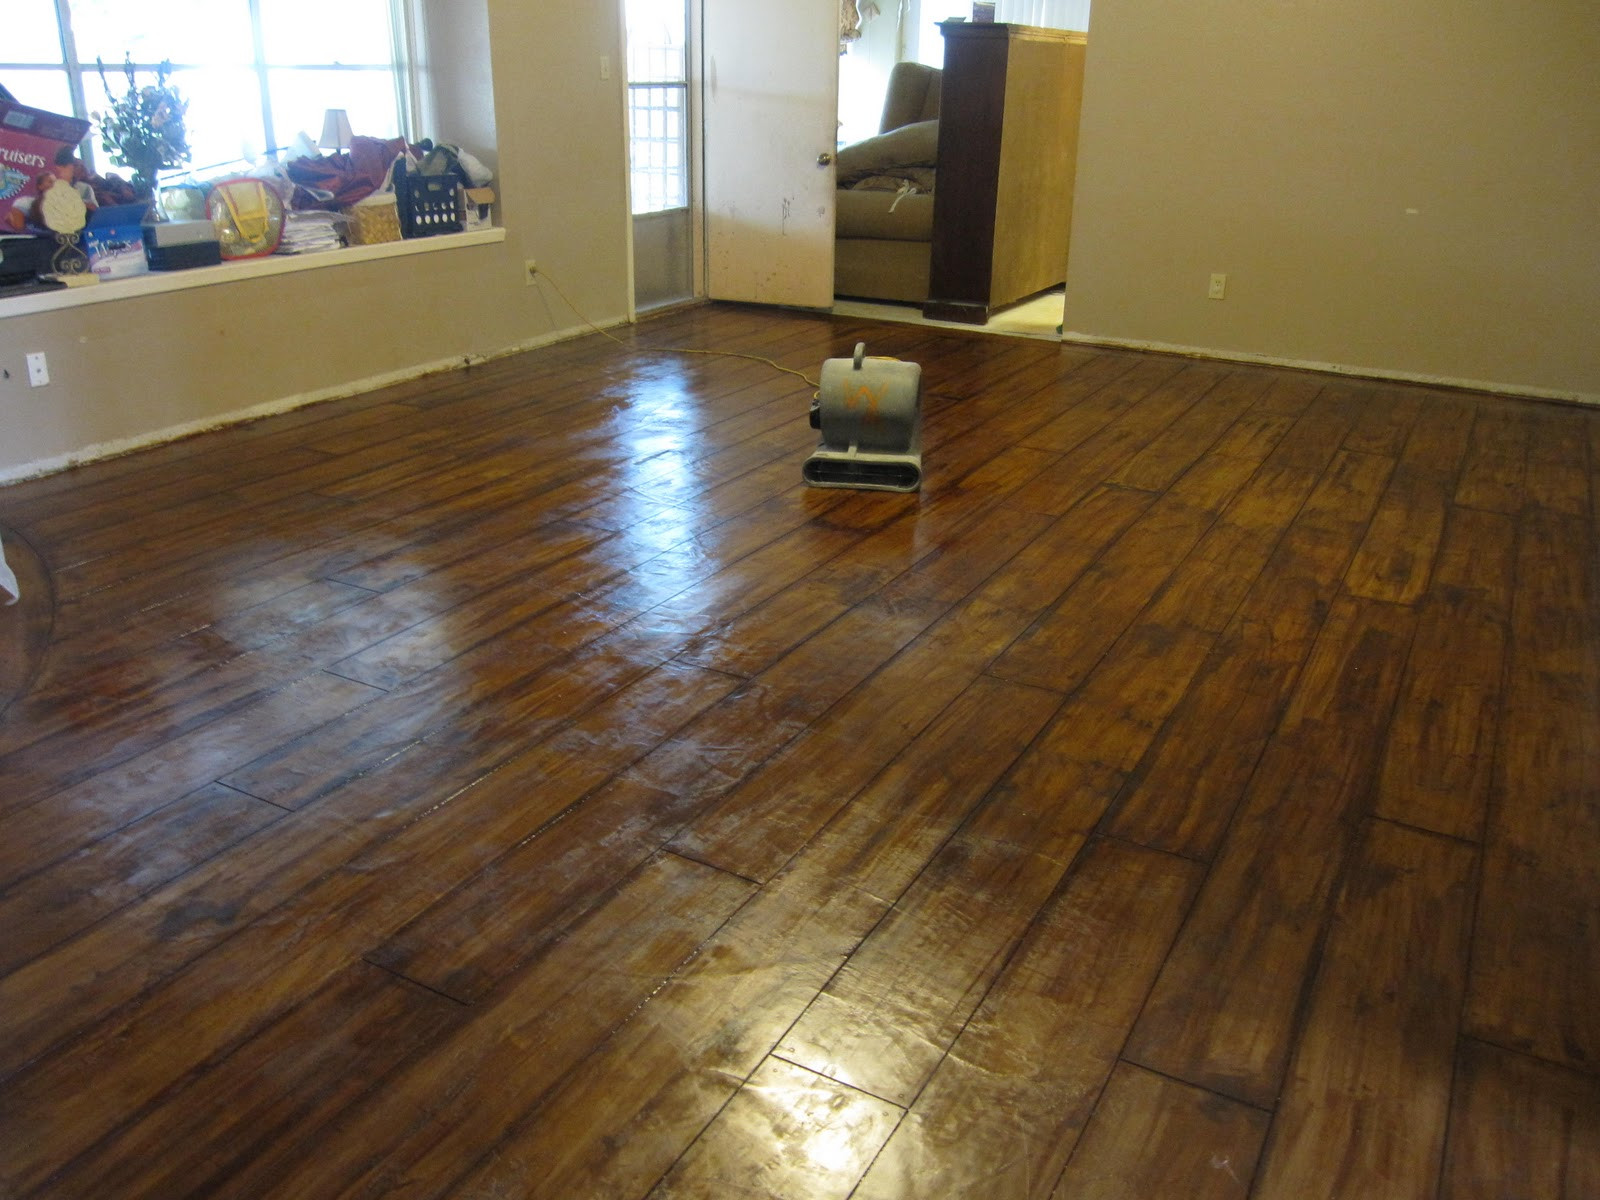 Best ideas about DIY Polished Concrete Floors . Save or Pin Painted Cement Floors Do It Yourself Now.